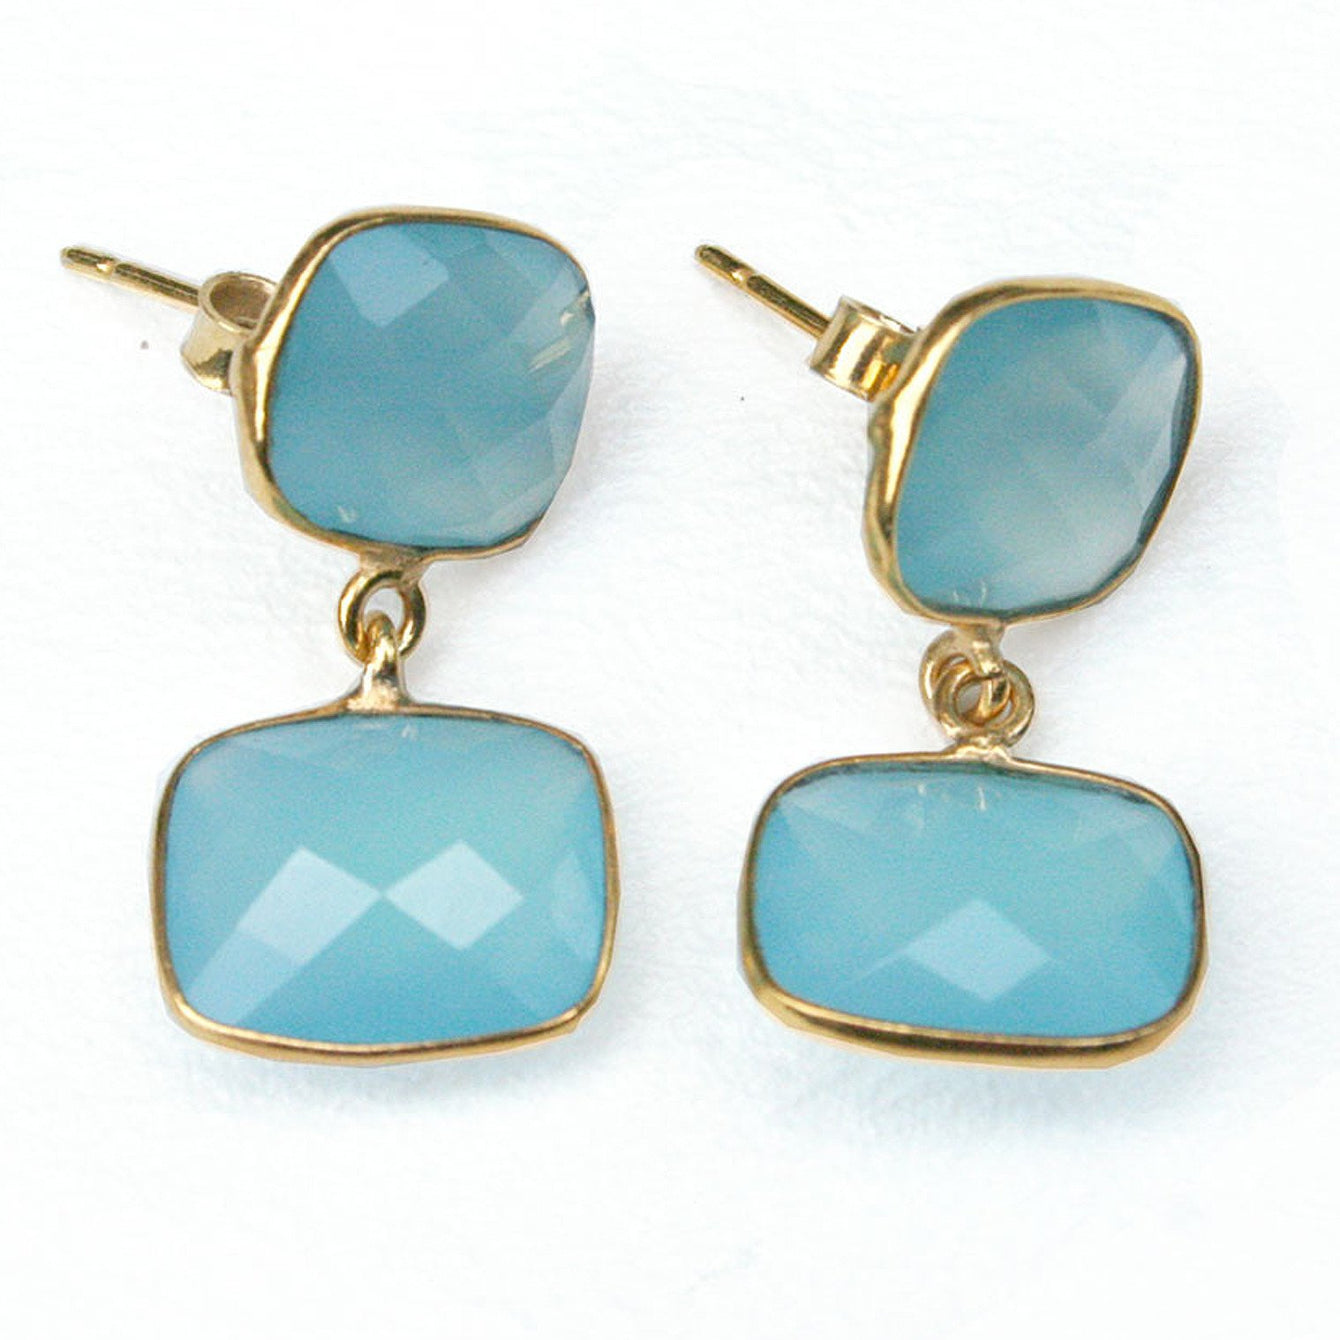 24k Gold Whitten Genuine Gemstone Post Earrings-Women - Jewelry - Earrings-ADDISON WEEKS-Aquamarine-Peccadilly